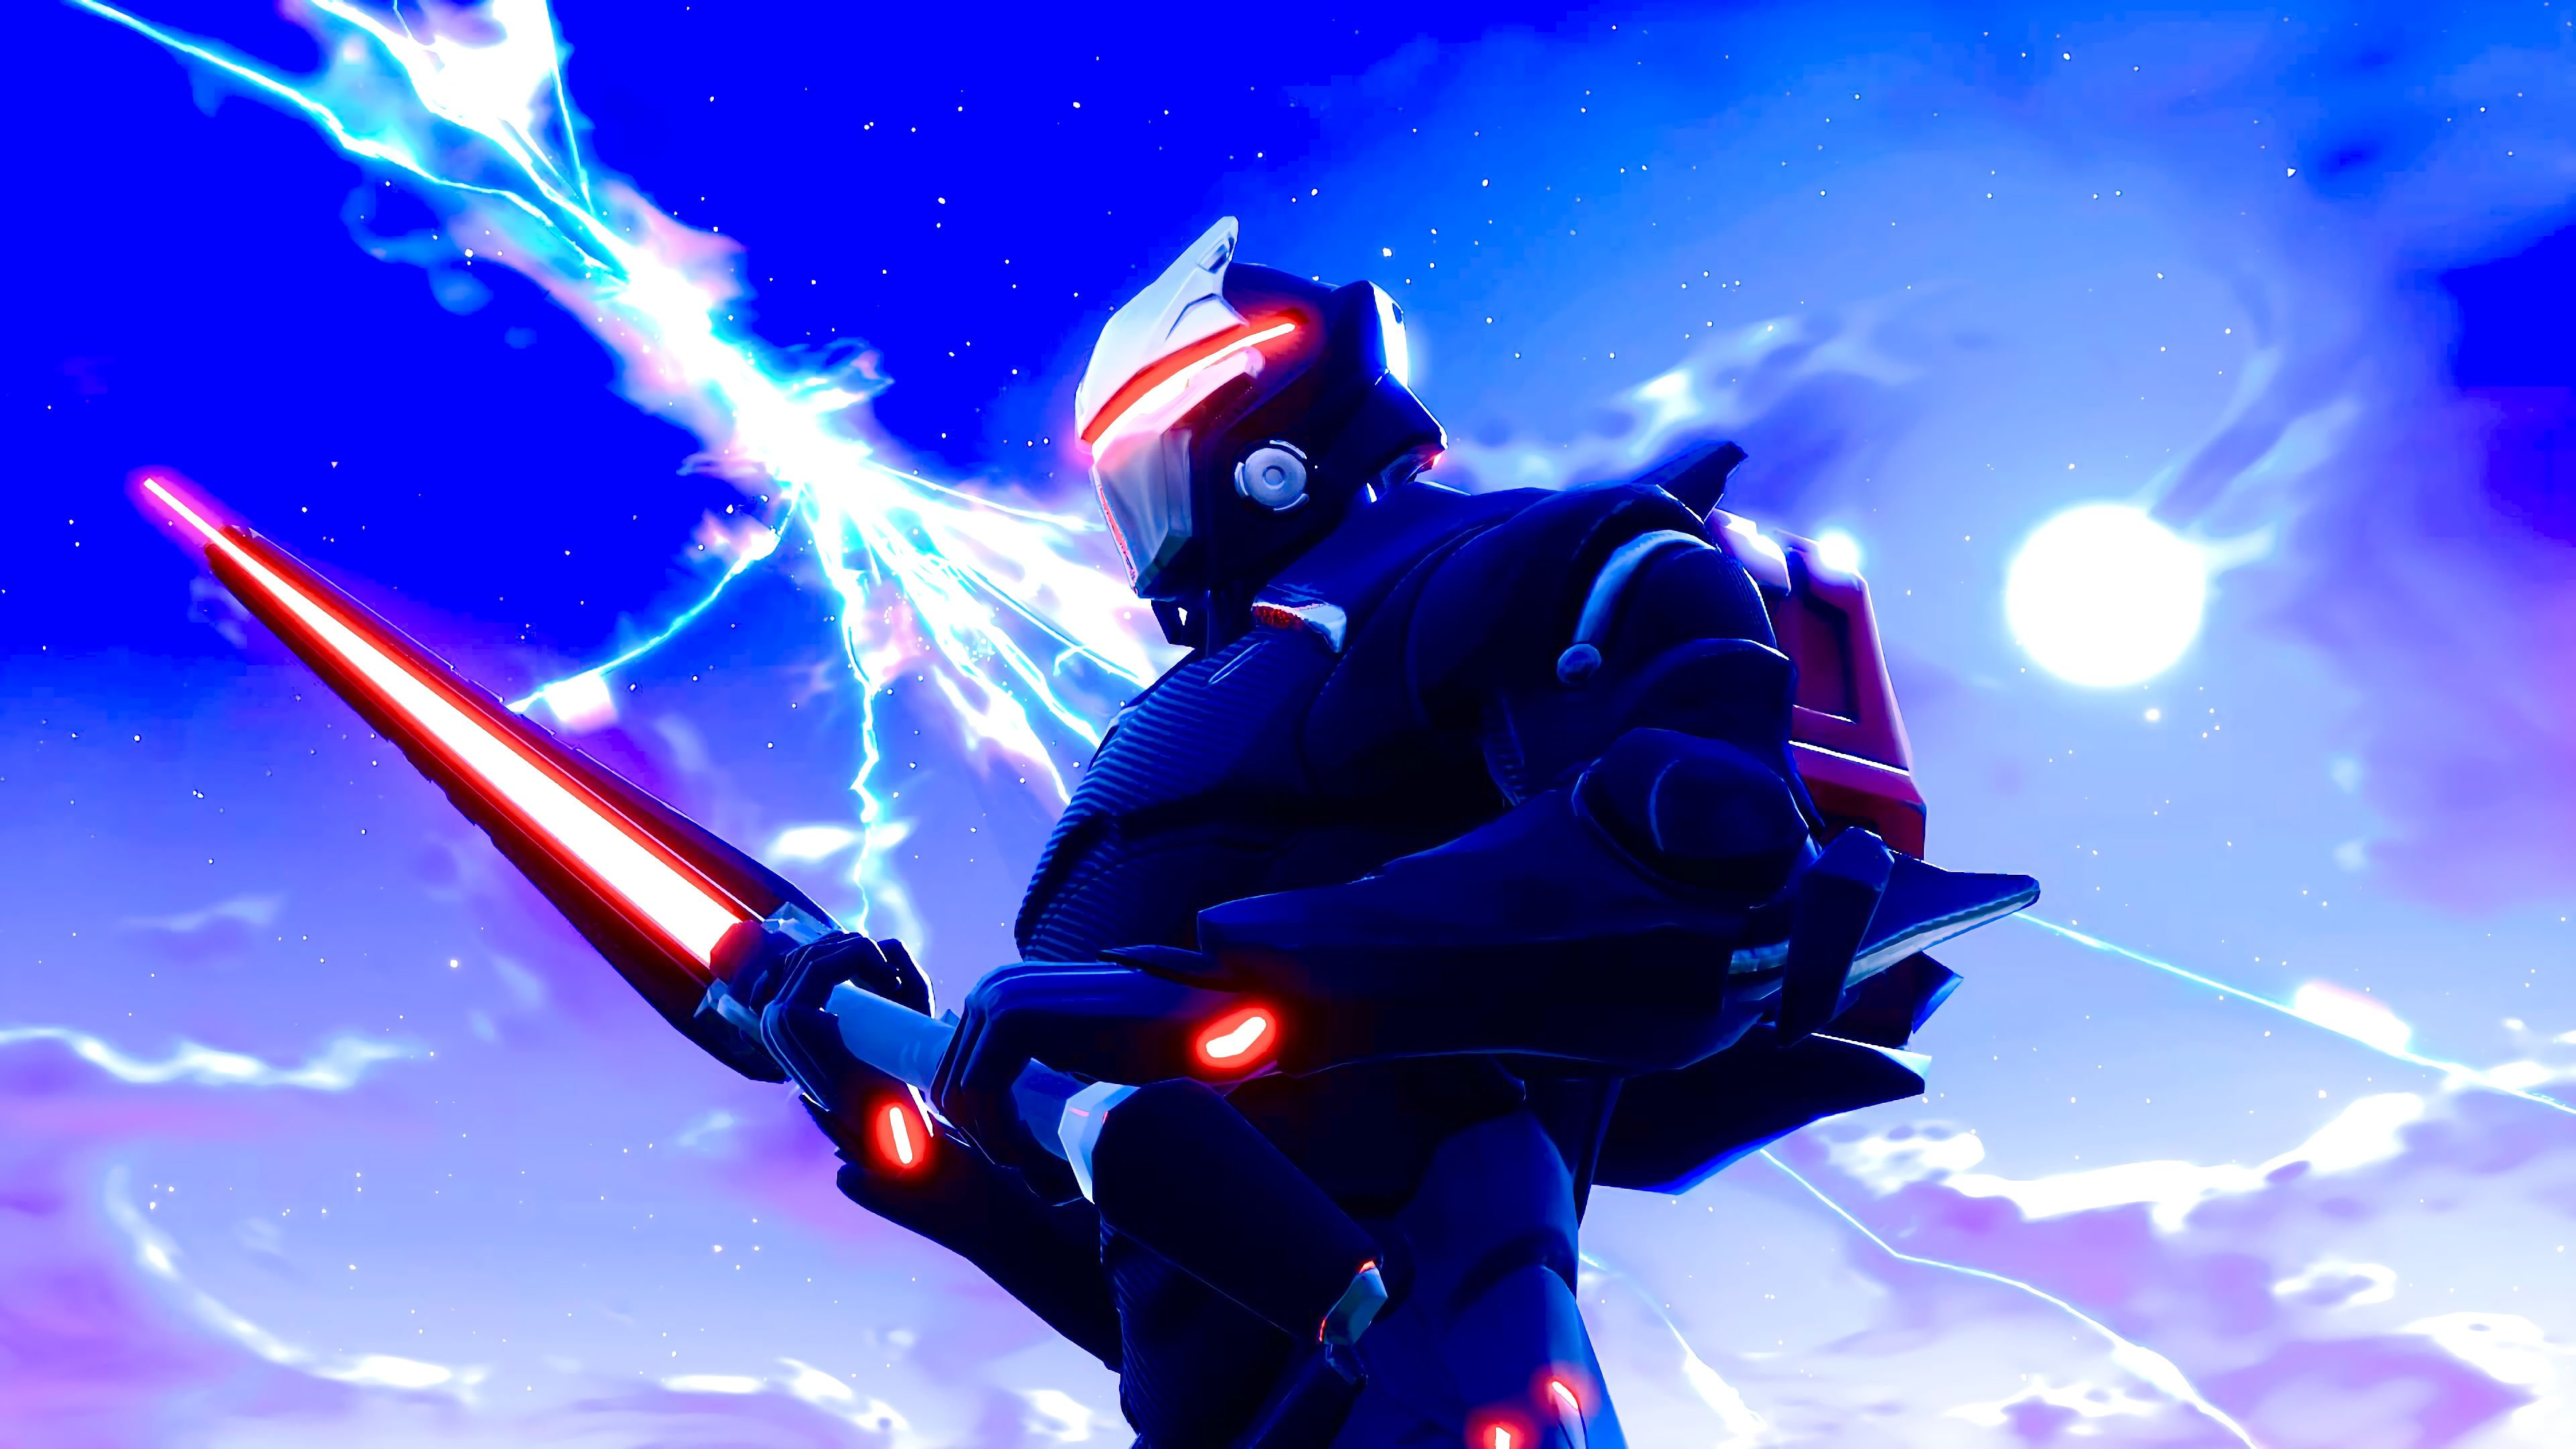 Omega Fortnite 4k Gaming Wallpapers 3840x2160 Wallpaper Gaming Wallpapers Hd